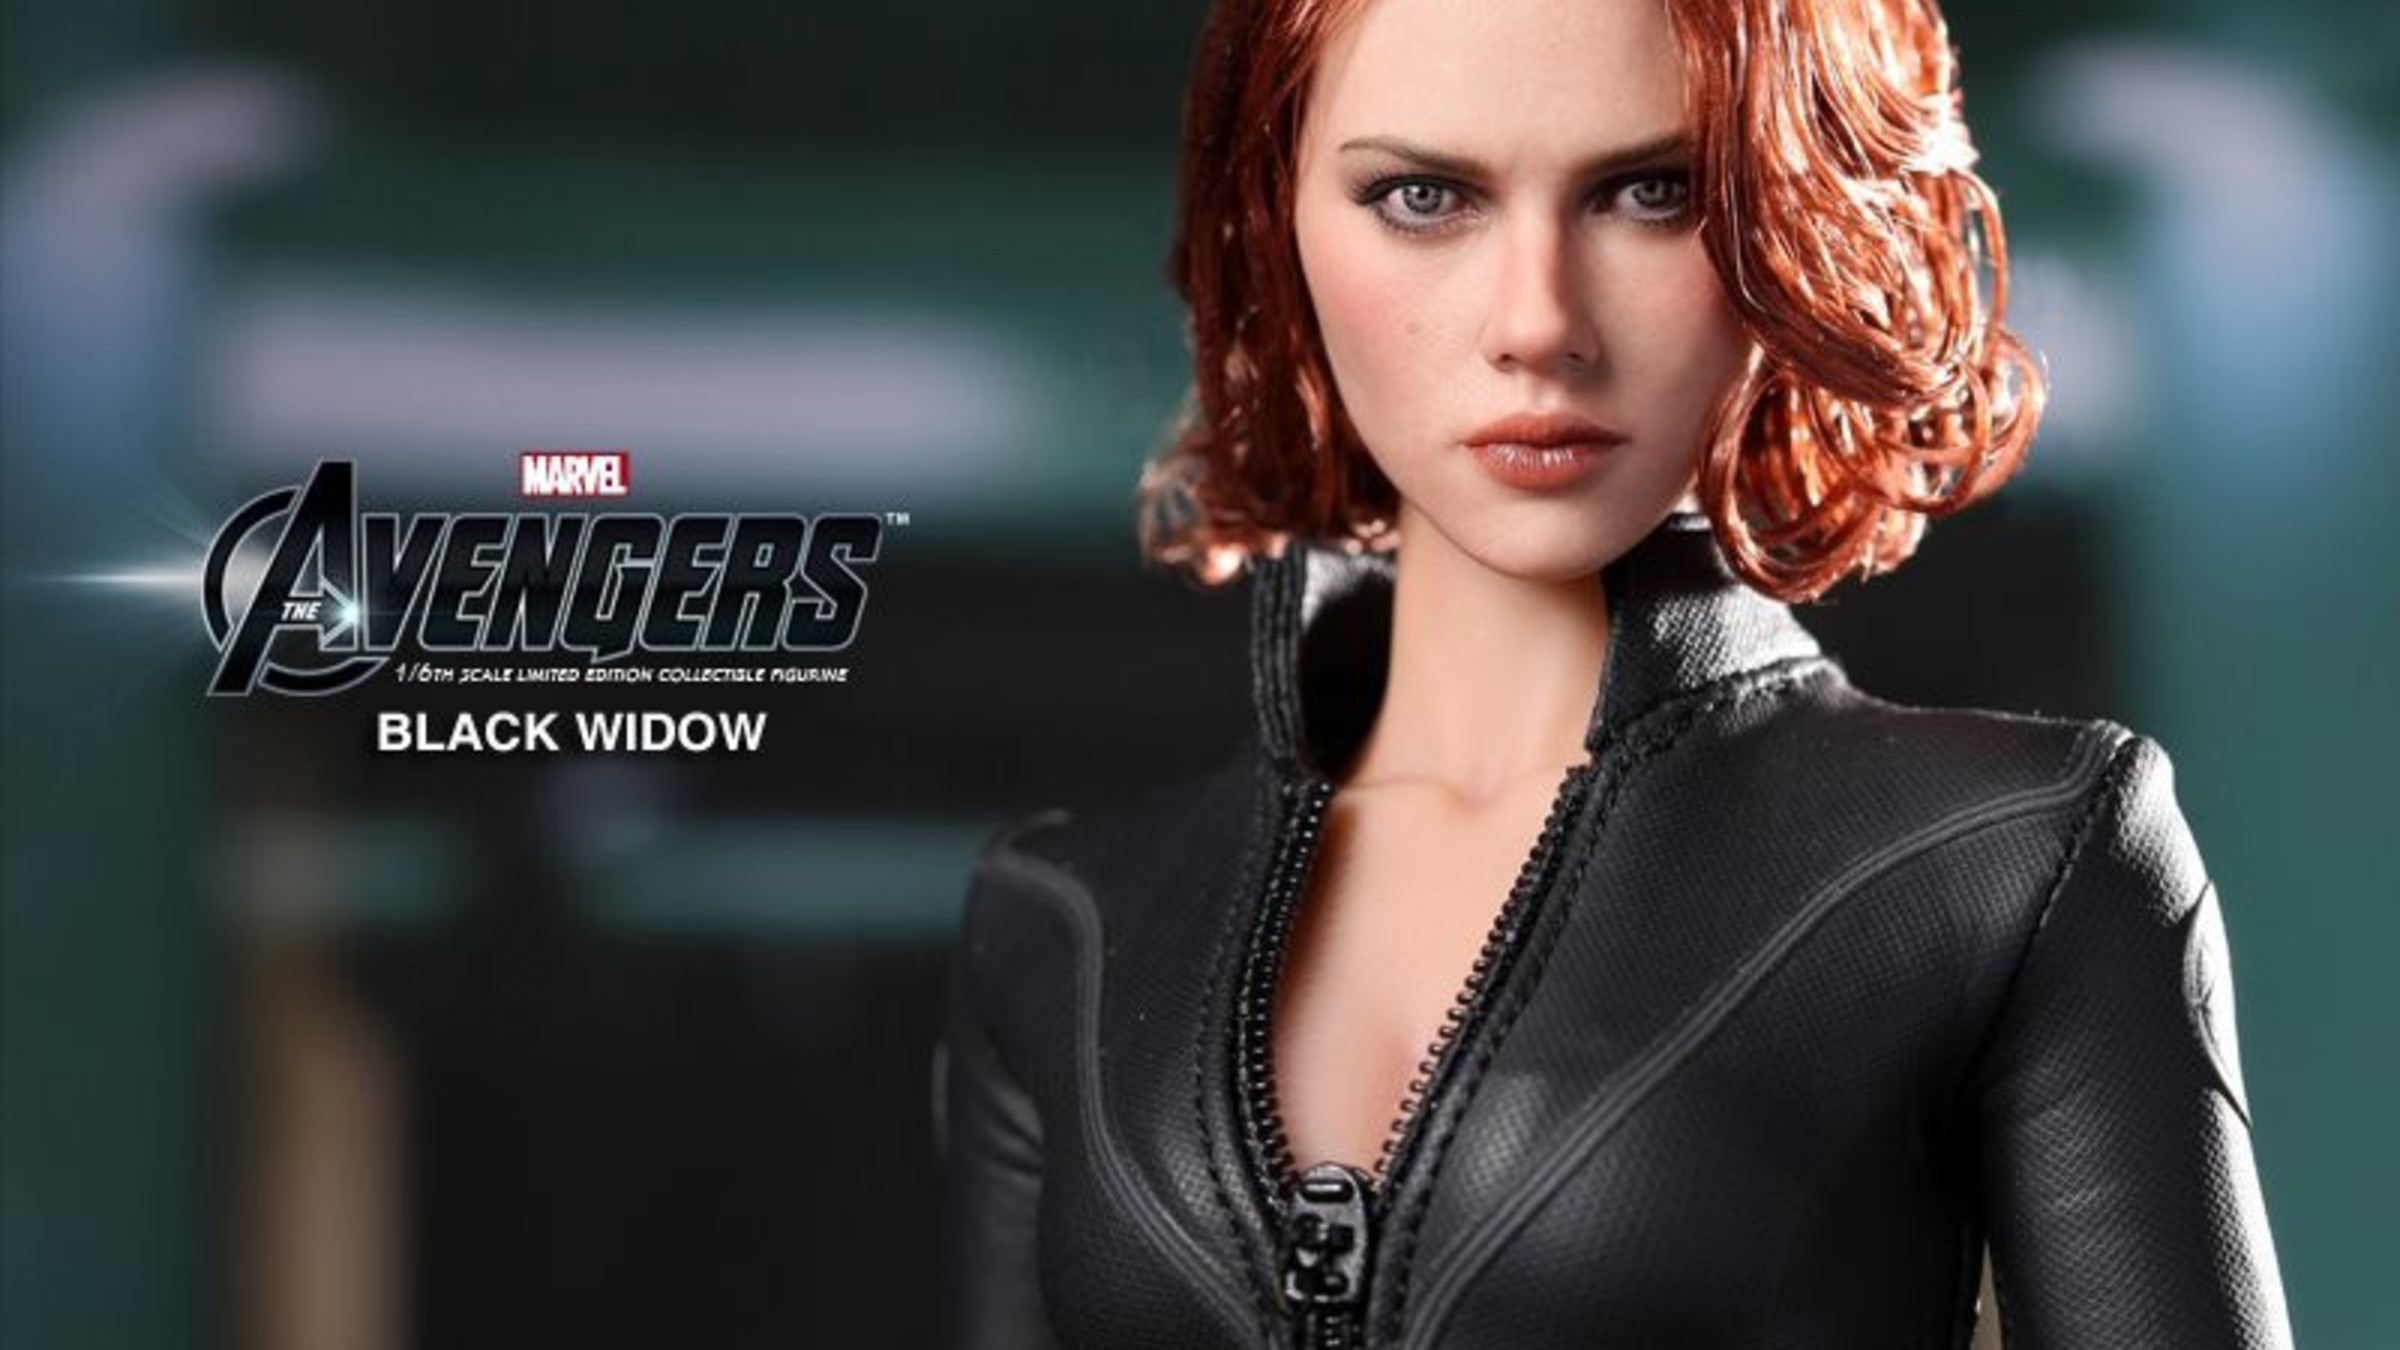 Black Widow The Avengers Figurines Action Figures Movie Wallpaper